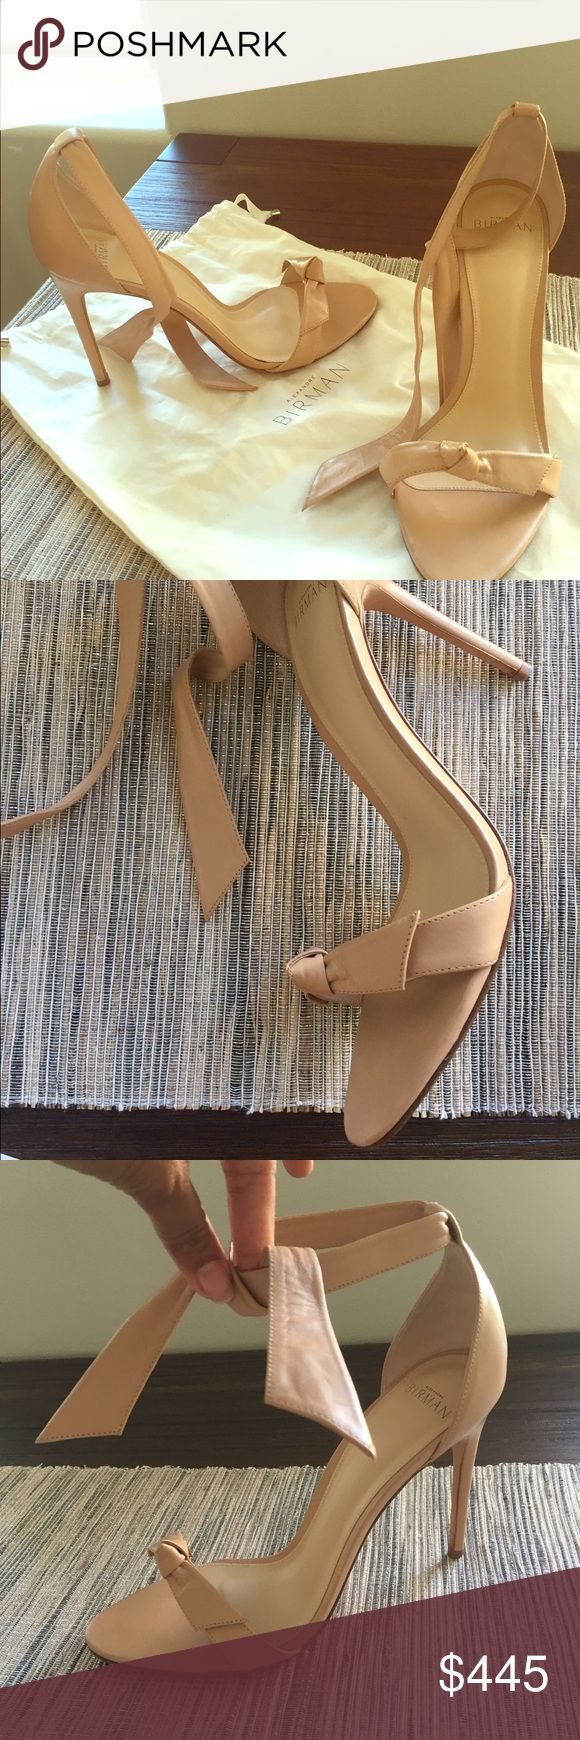 Alexandre Birman sexy nude heeled sandal!! Super beautiful shoes only worn twice! In amazing condition! Has dust cover but no box. Size 39 Alexandre Birman. Beautiful with jeans or skirts/dresses! Alexandre birman Shoes Heels